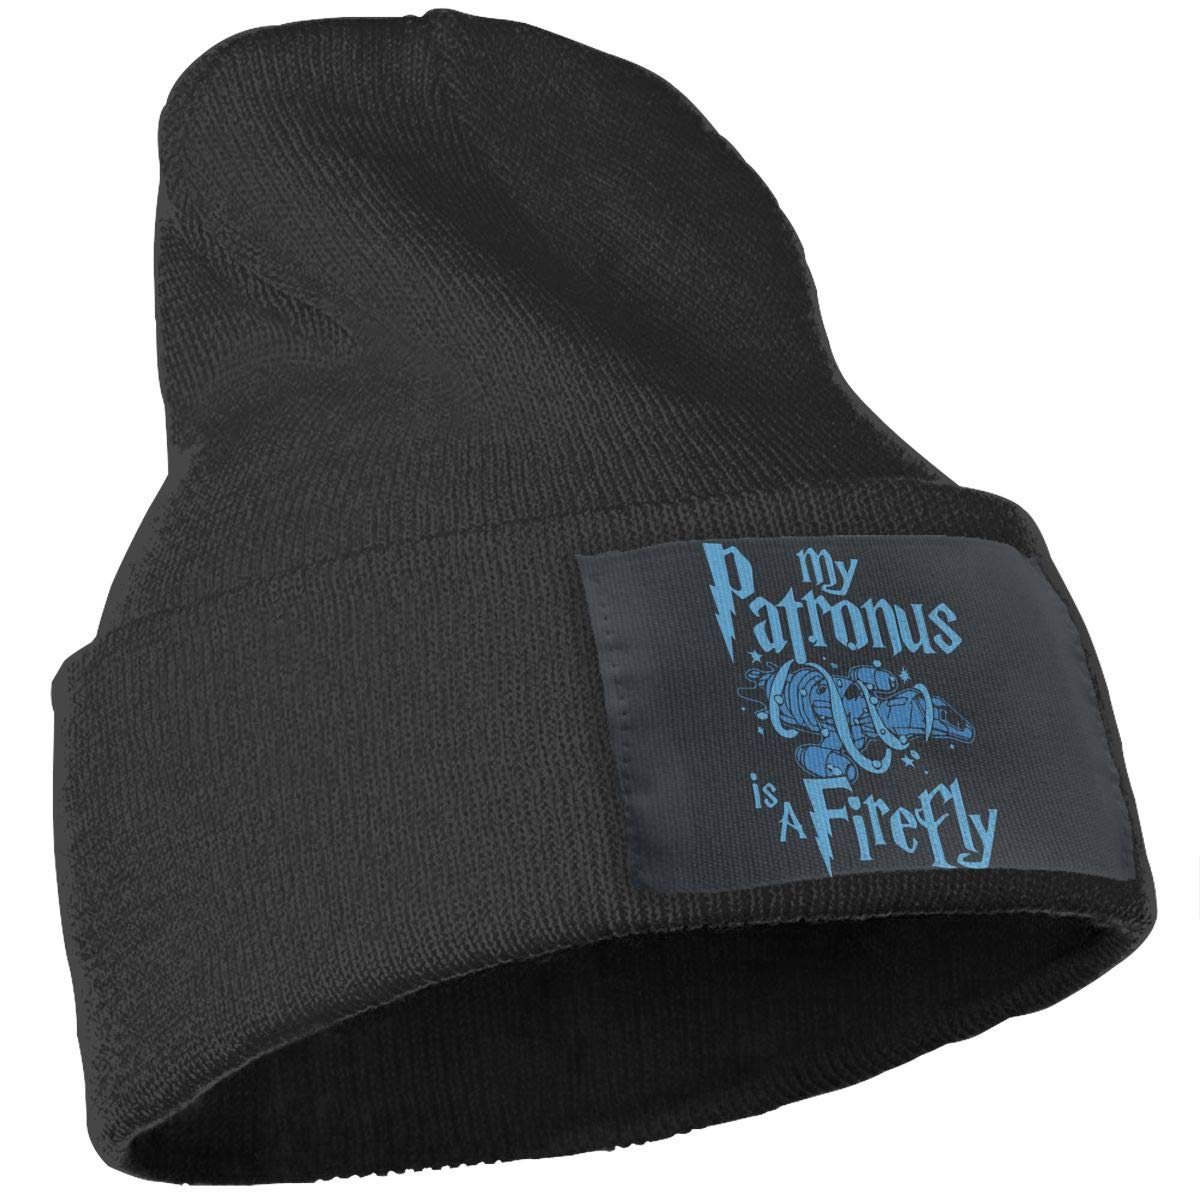 My Patronus is A Firefly Men /& Women Winter Fashion Pure Color Hat